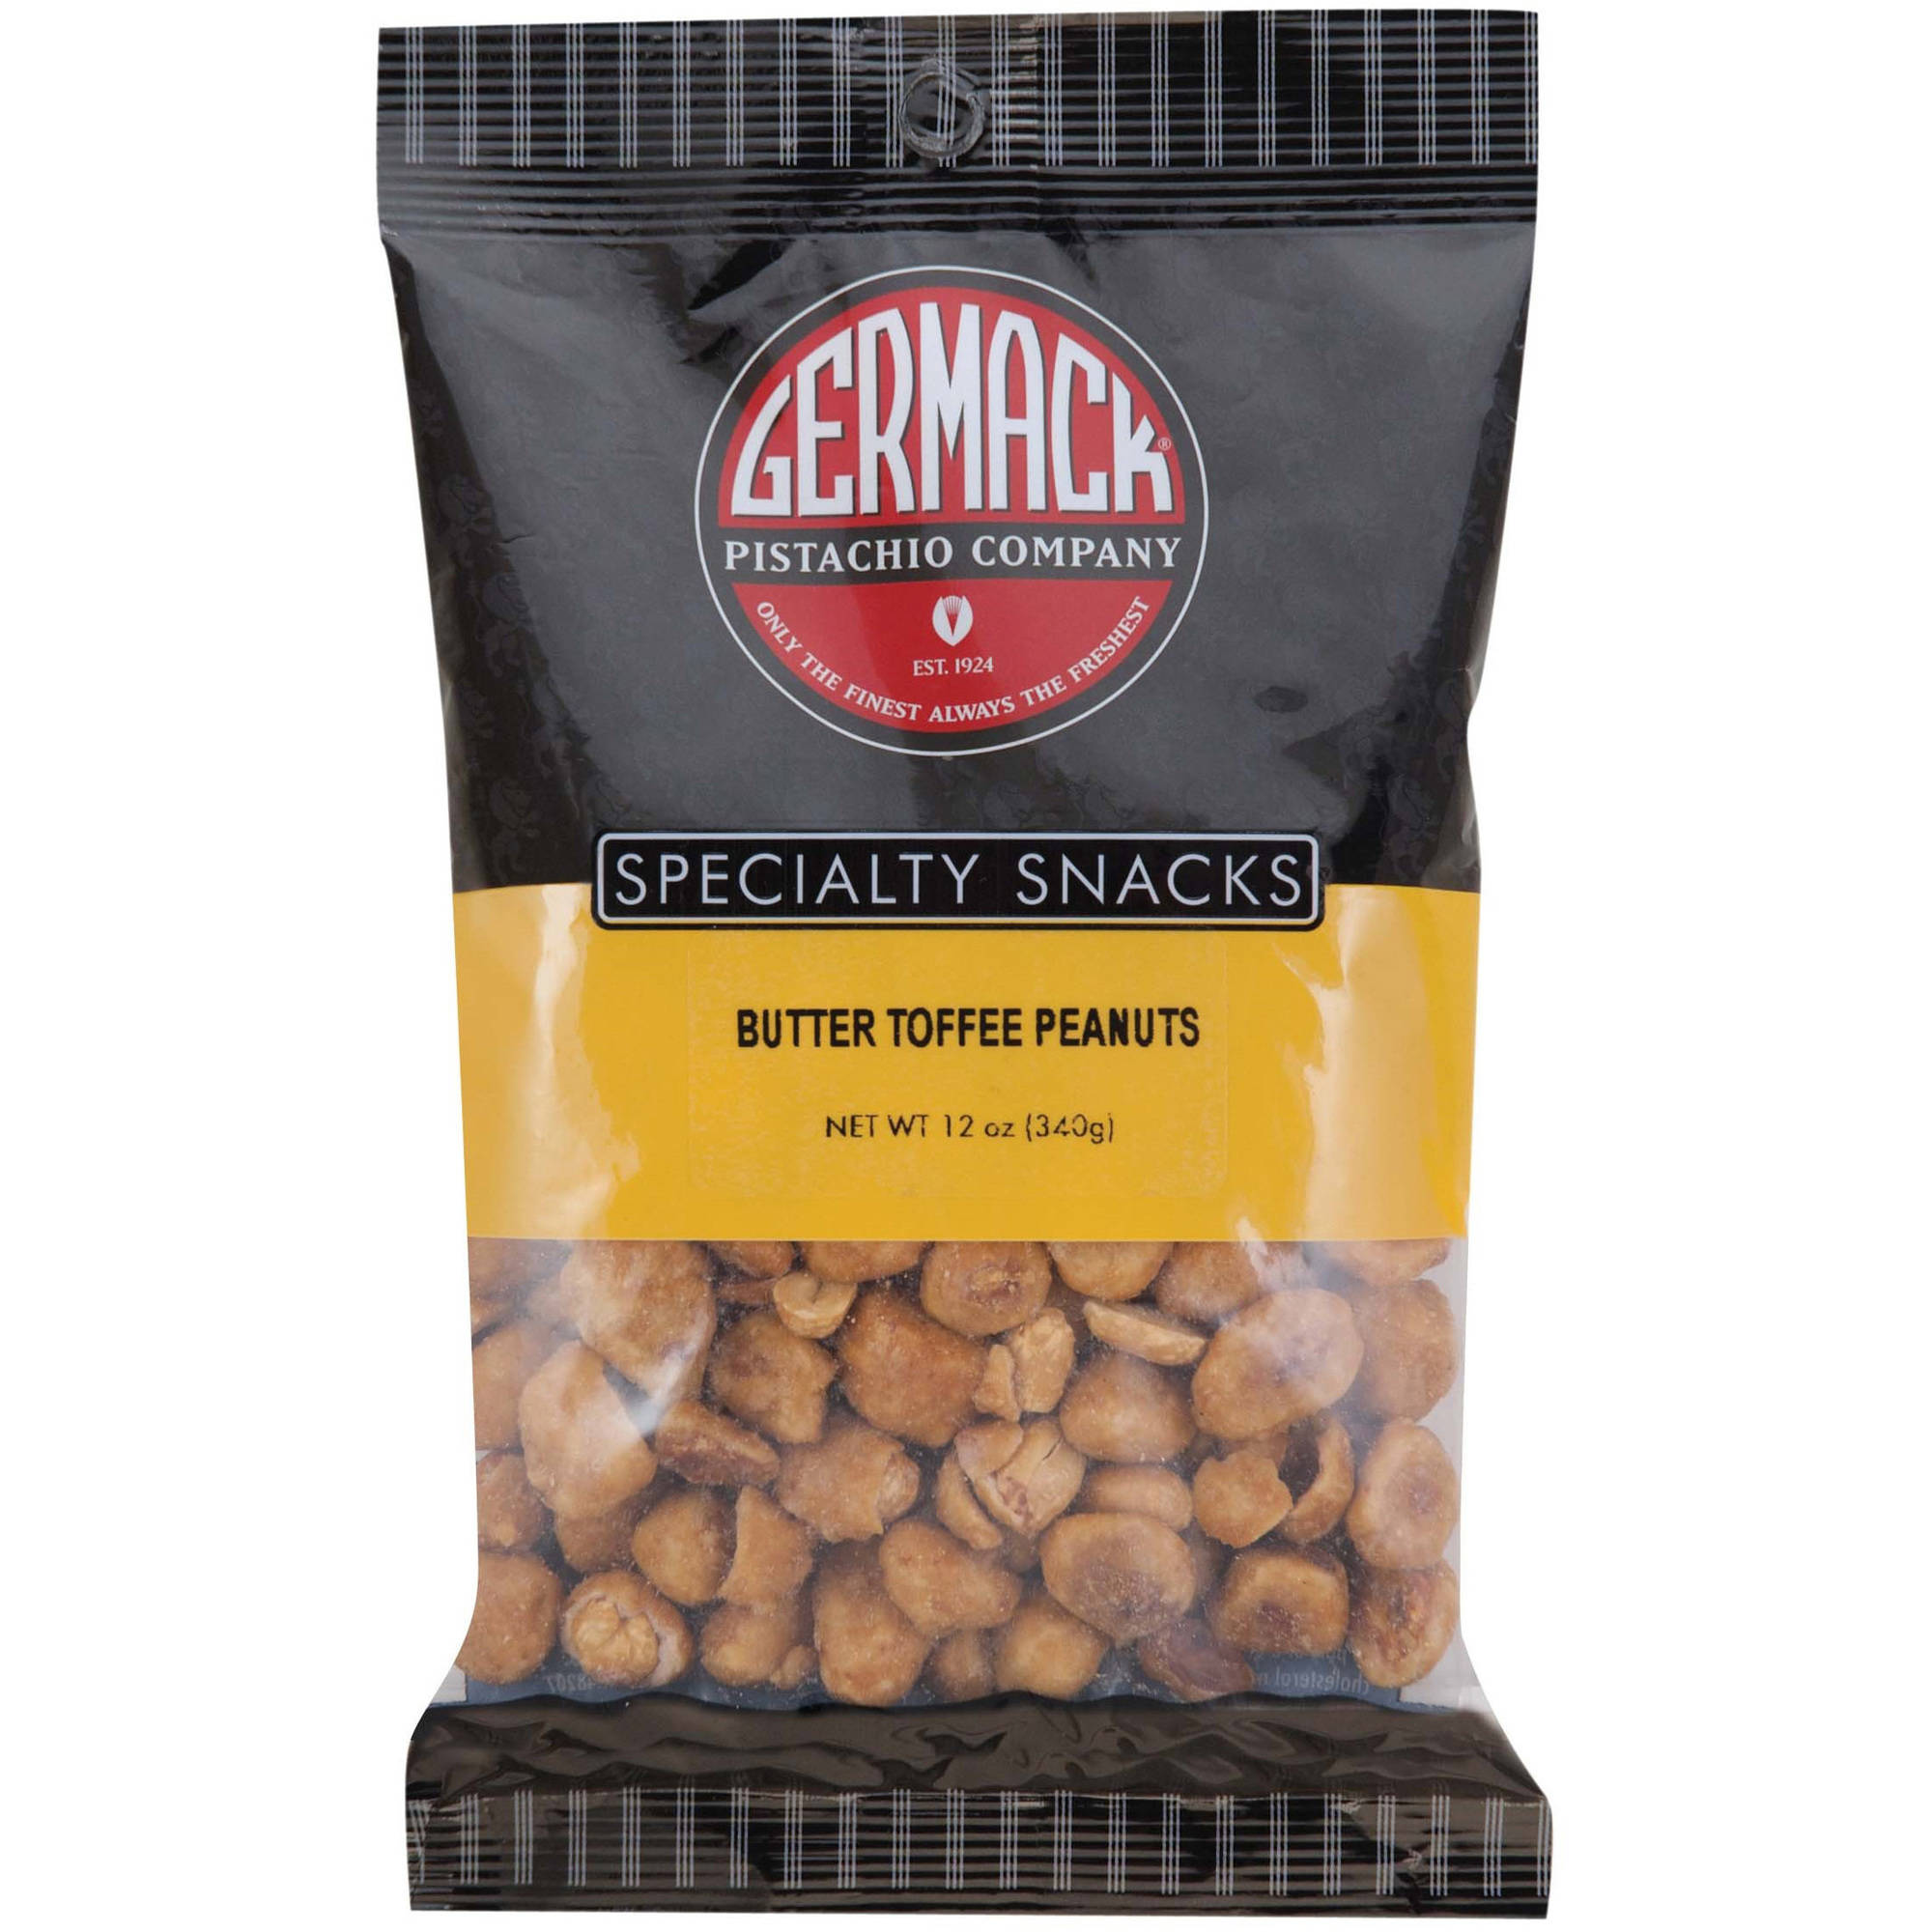 Germack Pistachio Company Specialty Snacks Butter Toffee Peanuts, 12 oz by GERMACK